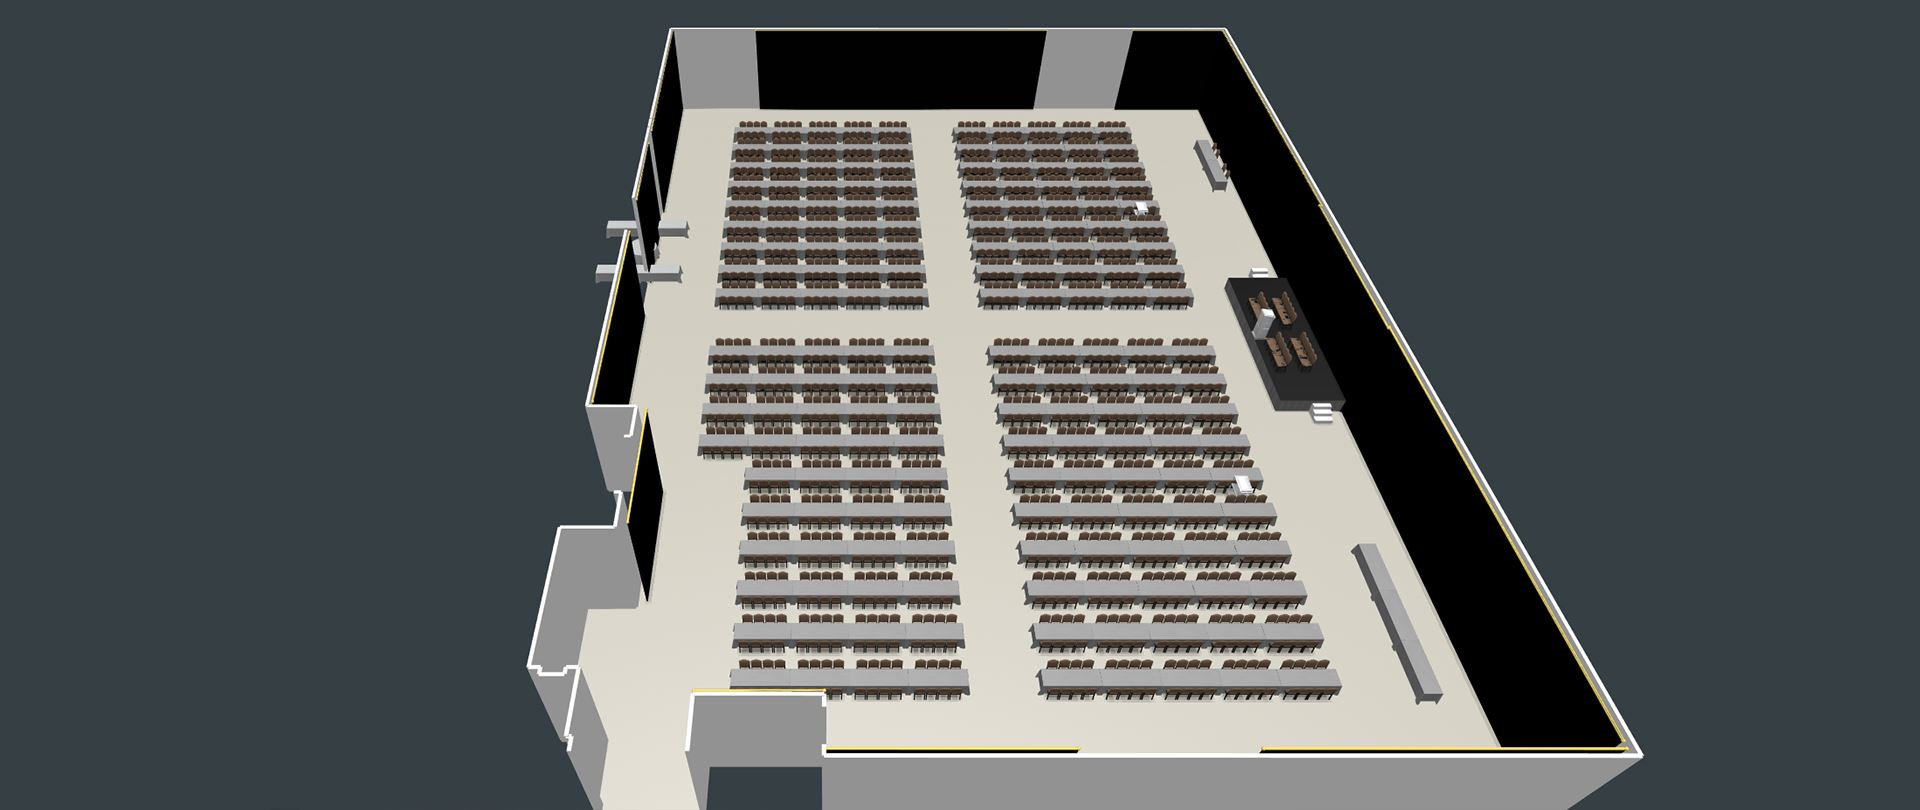 3D View of the Exhibit Hall with Family Style Banquet Seating